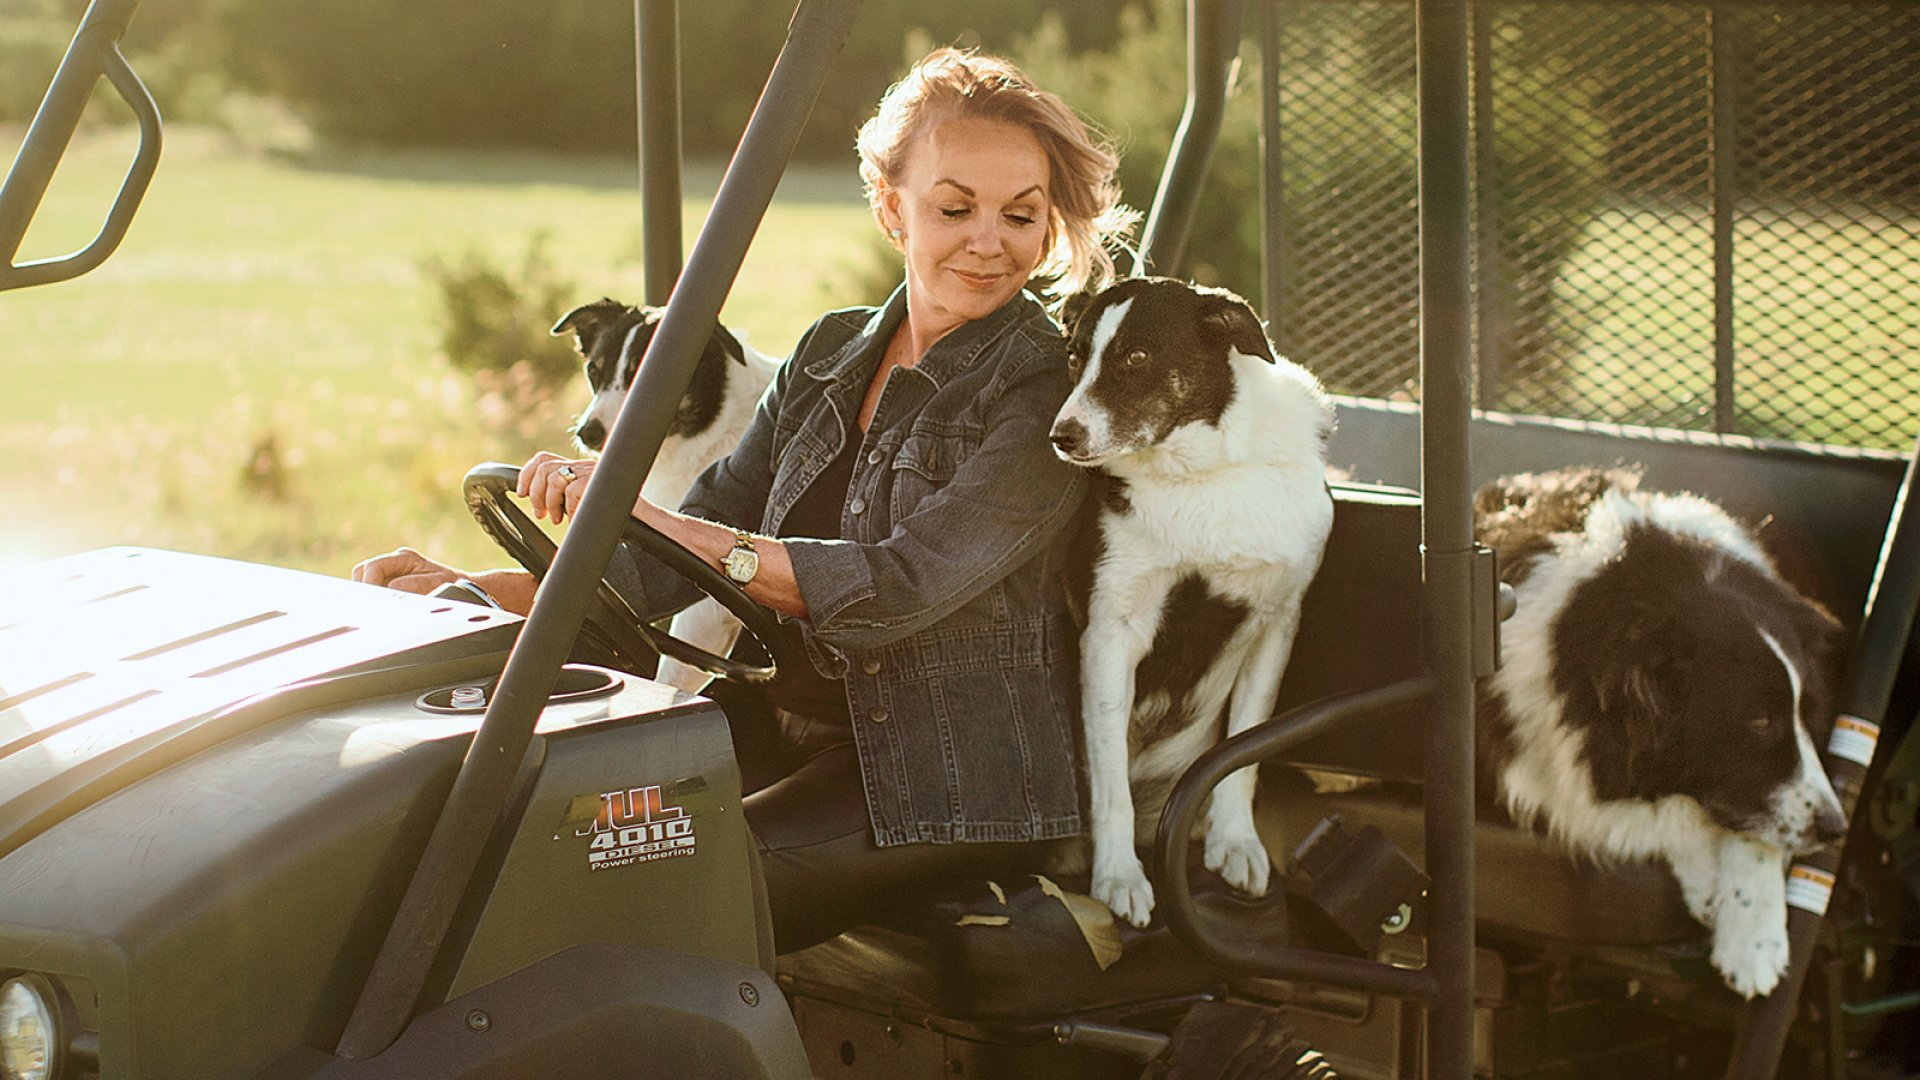 Gay Gaddis drives across her Texas ranch with three border collies.